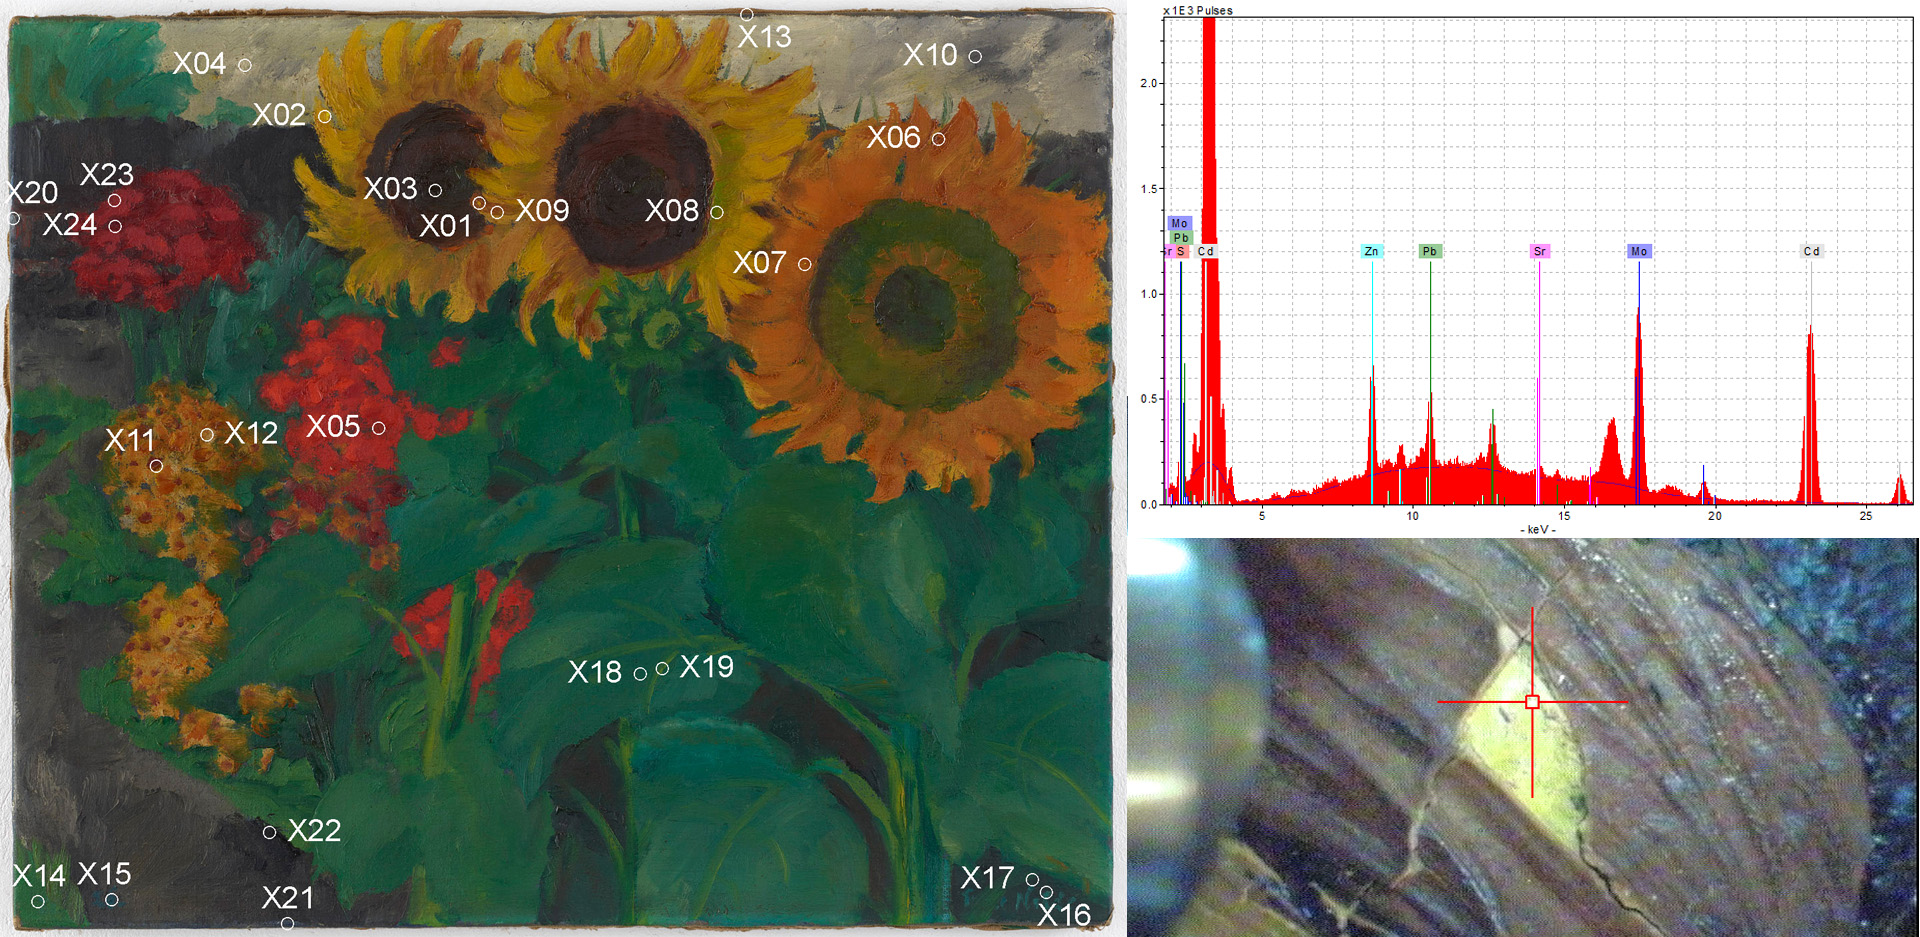 Micro-X-ray fluorescence analysis (µ-RFA) of Emil Nolde's painting Sonnenblumen (1926) showing the mapping of measurement points (left). µ-RFA spectrum of measurement point X01 with measurement photograph (right).